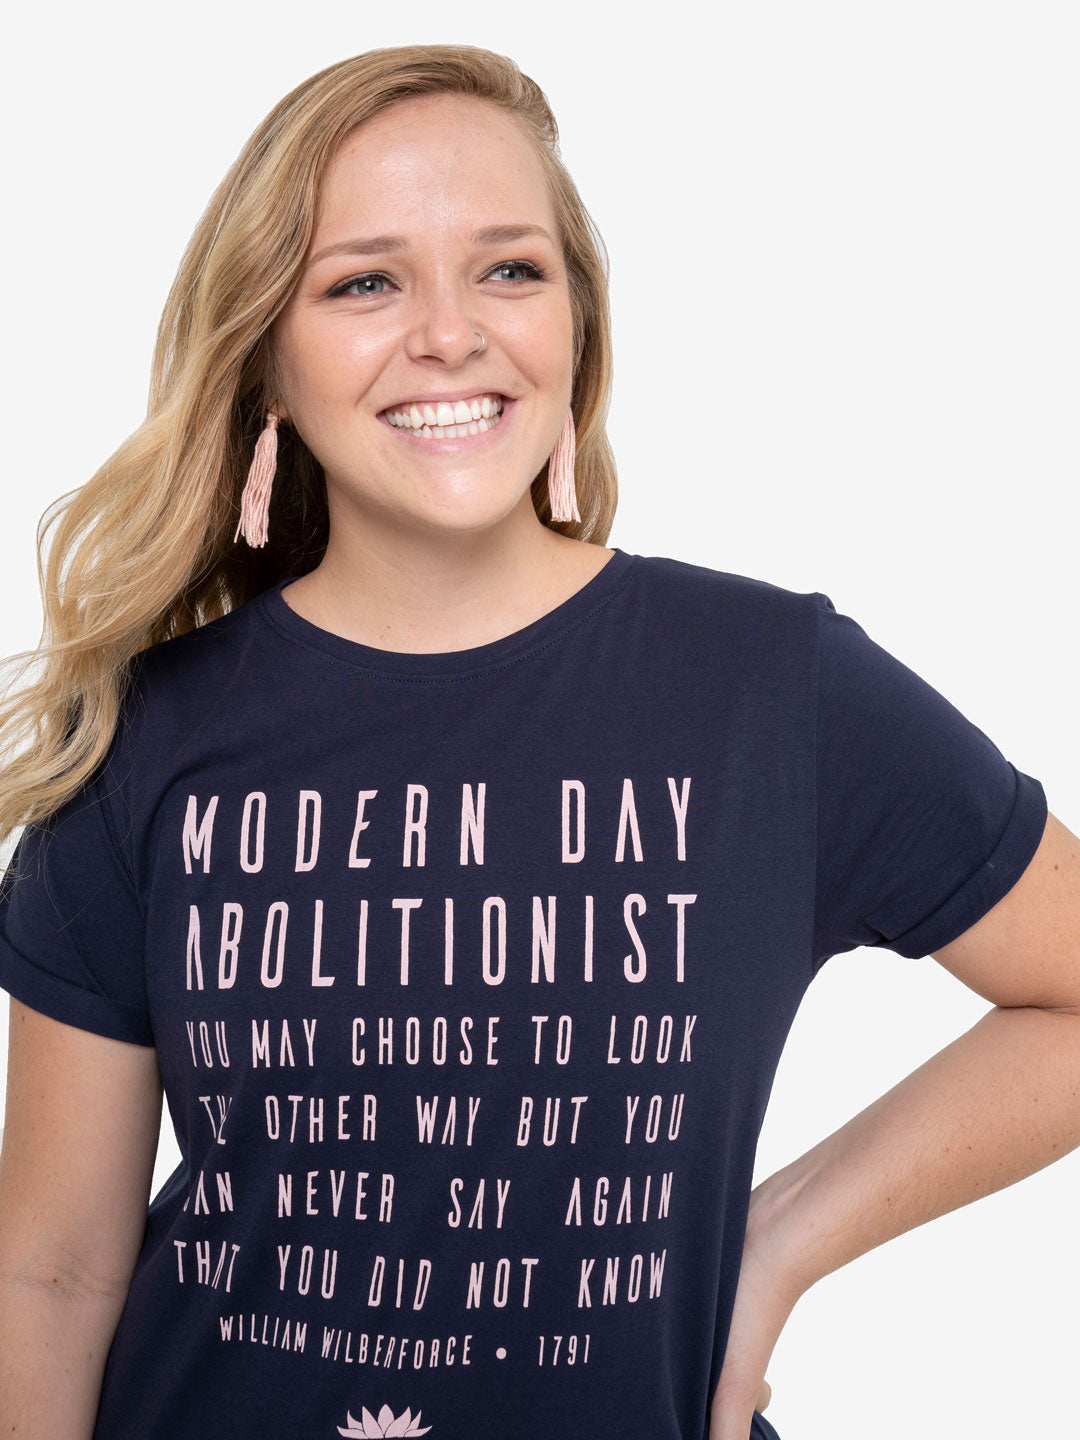 Modern Day Abolitionist Women's Relaxed Fit Tee